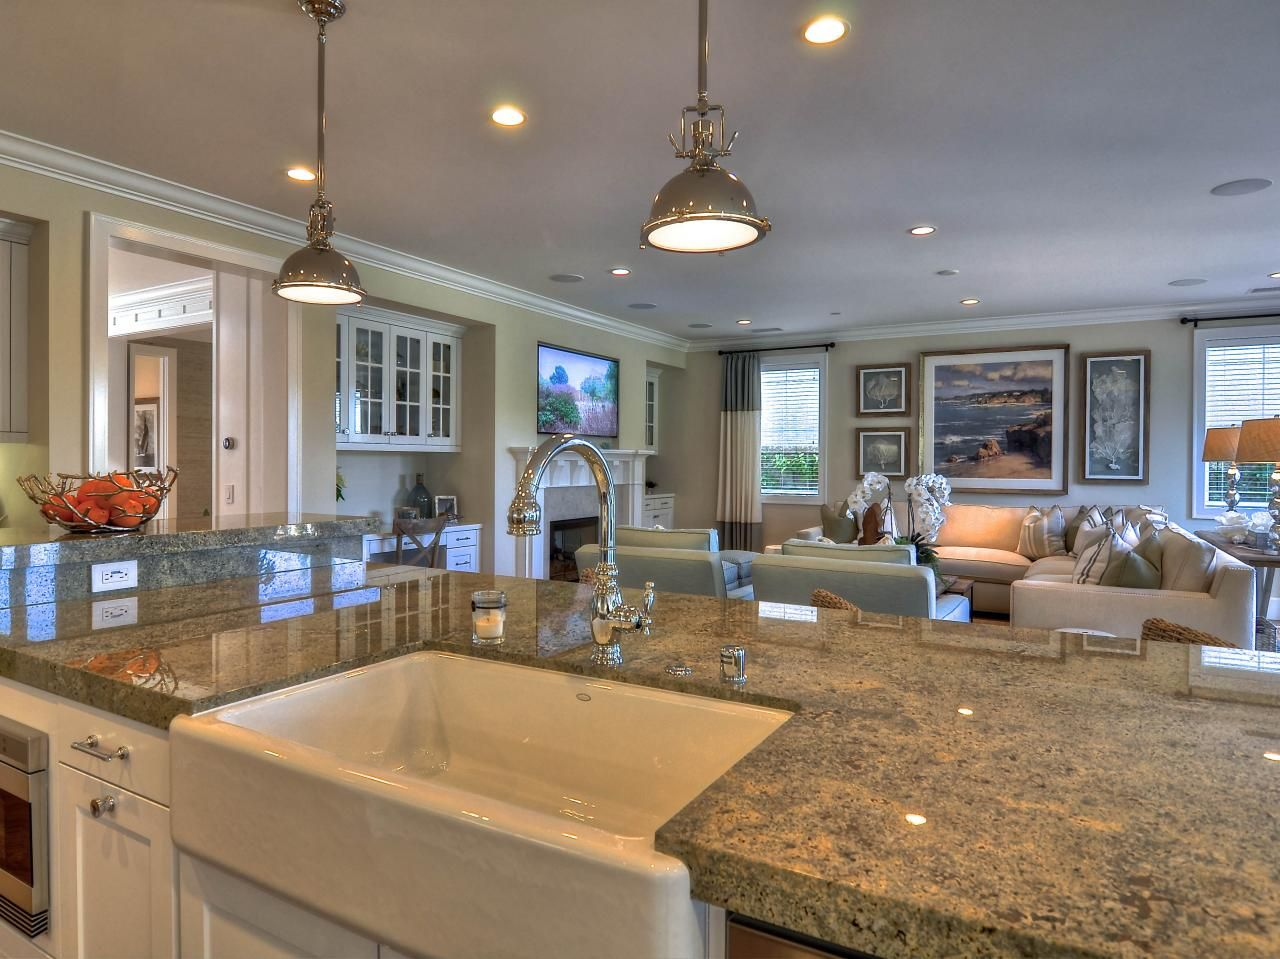 A Large Granite Topped Kitchen Island Adds Plenty Of Functional Space For Food Prep While